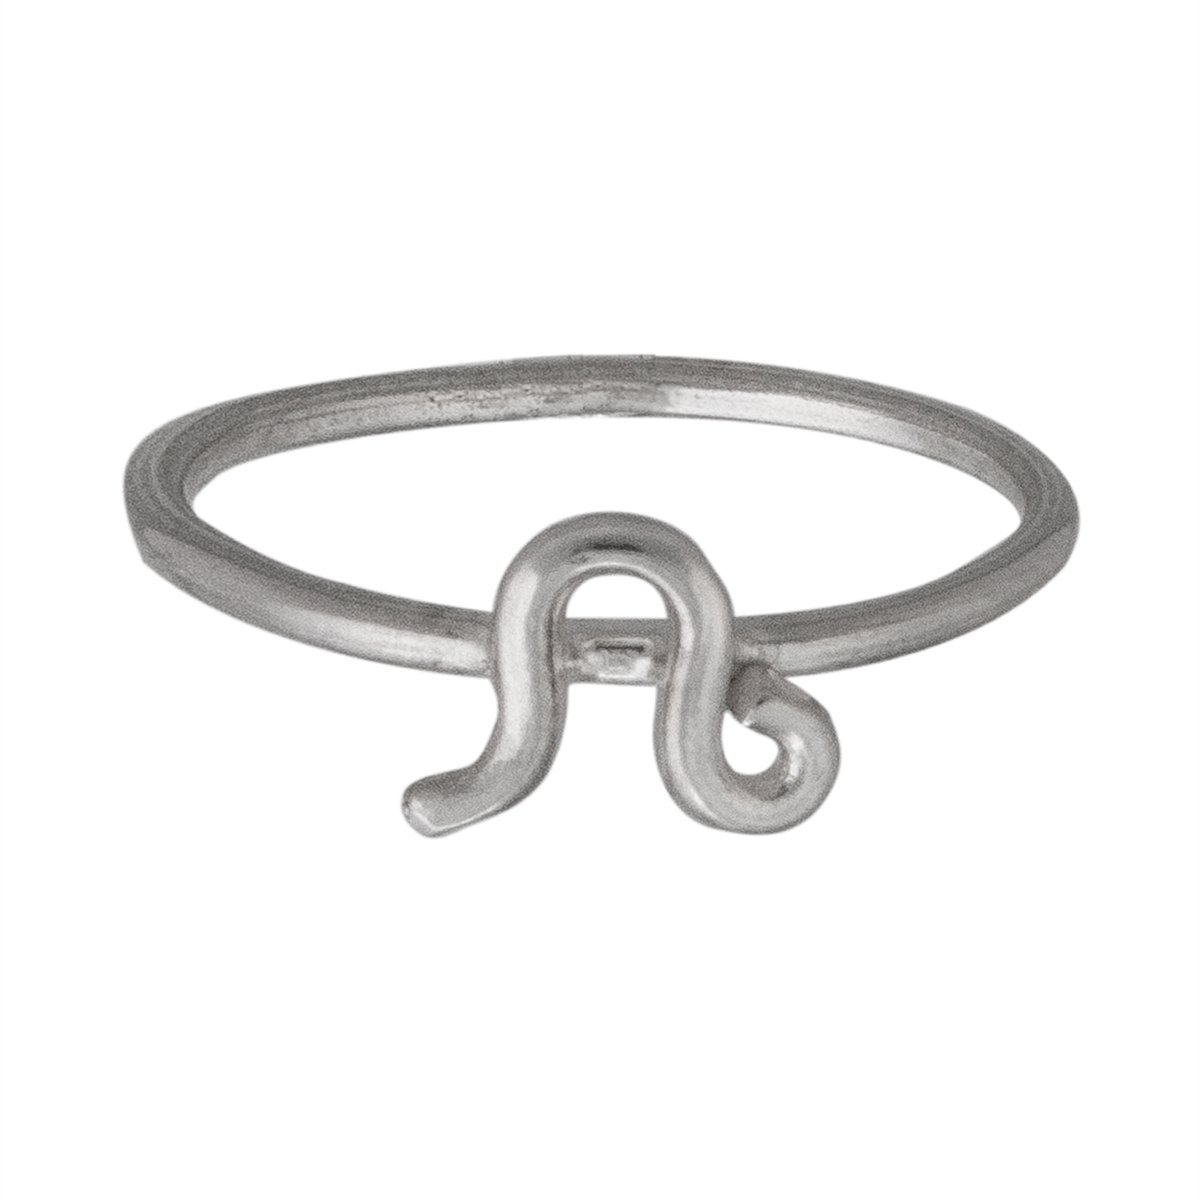 sterling-silver-leo-ring - 1 - Charles Albert Inc